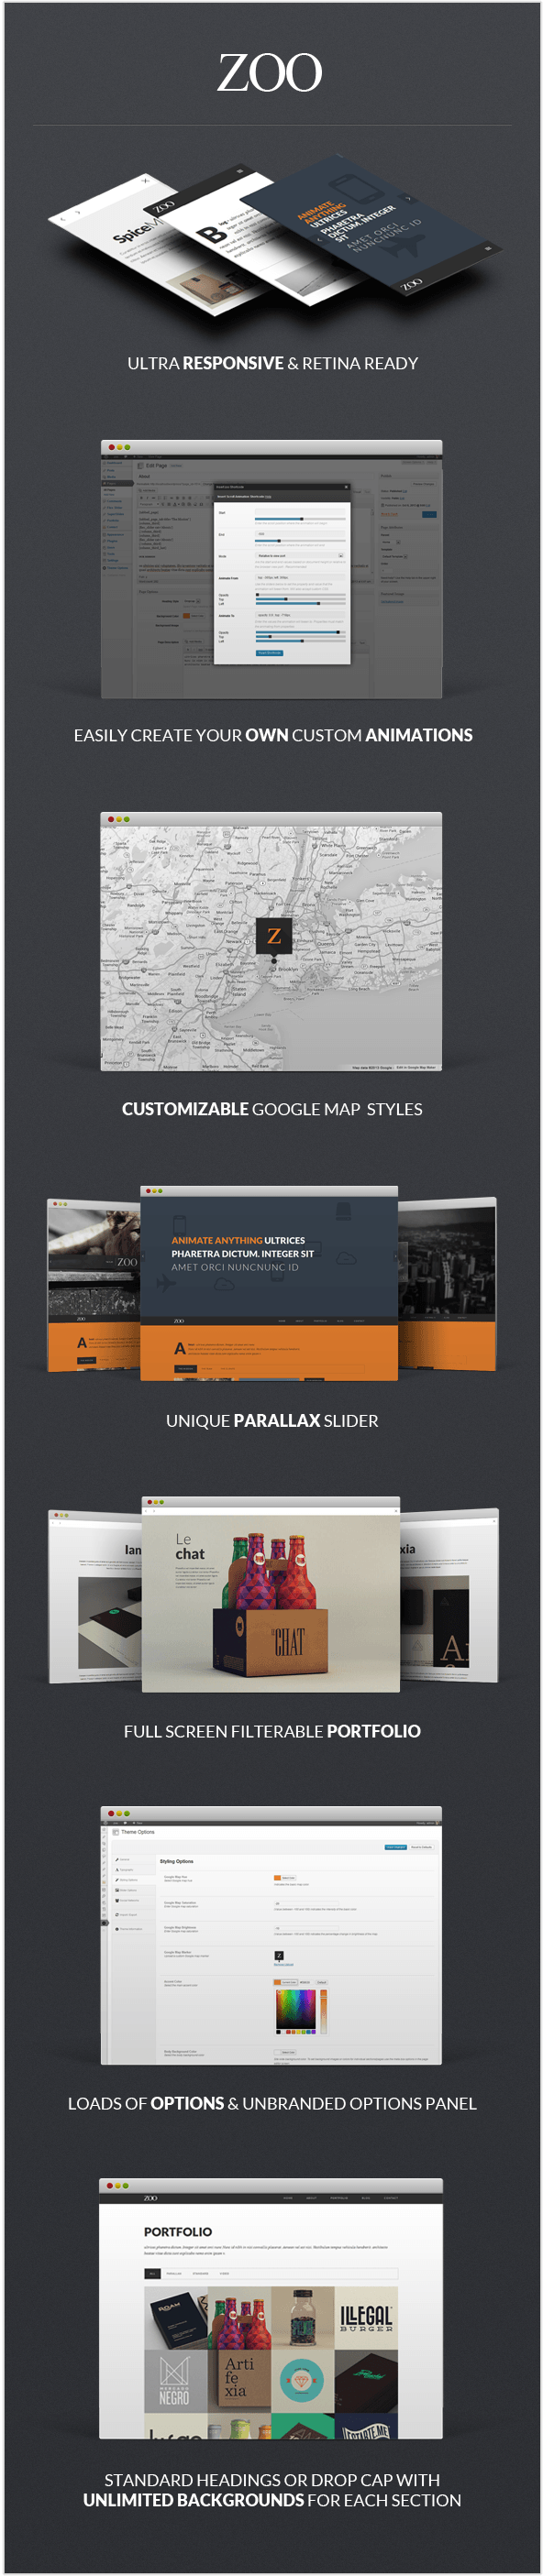 Zoo - Responsive One Page Parallax Theme - 3